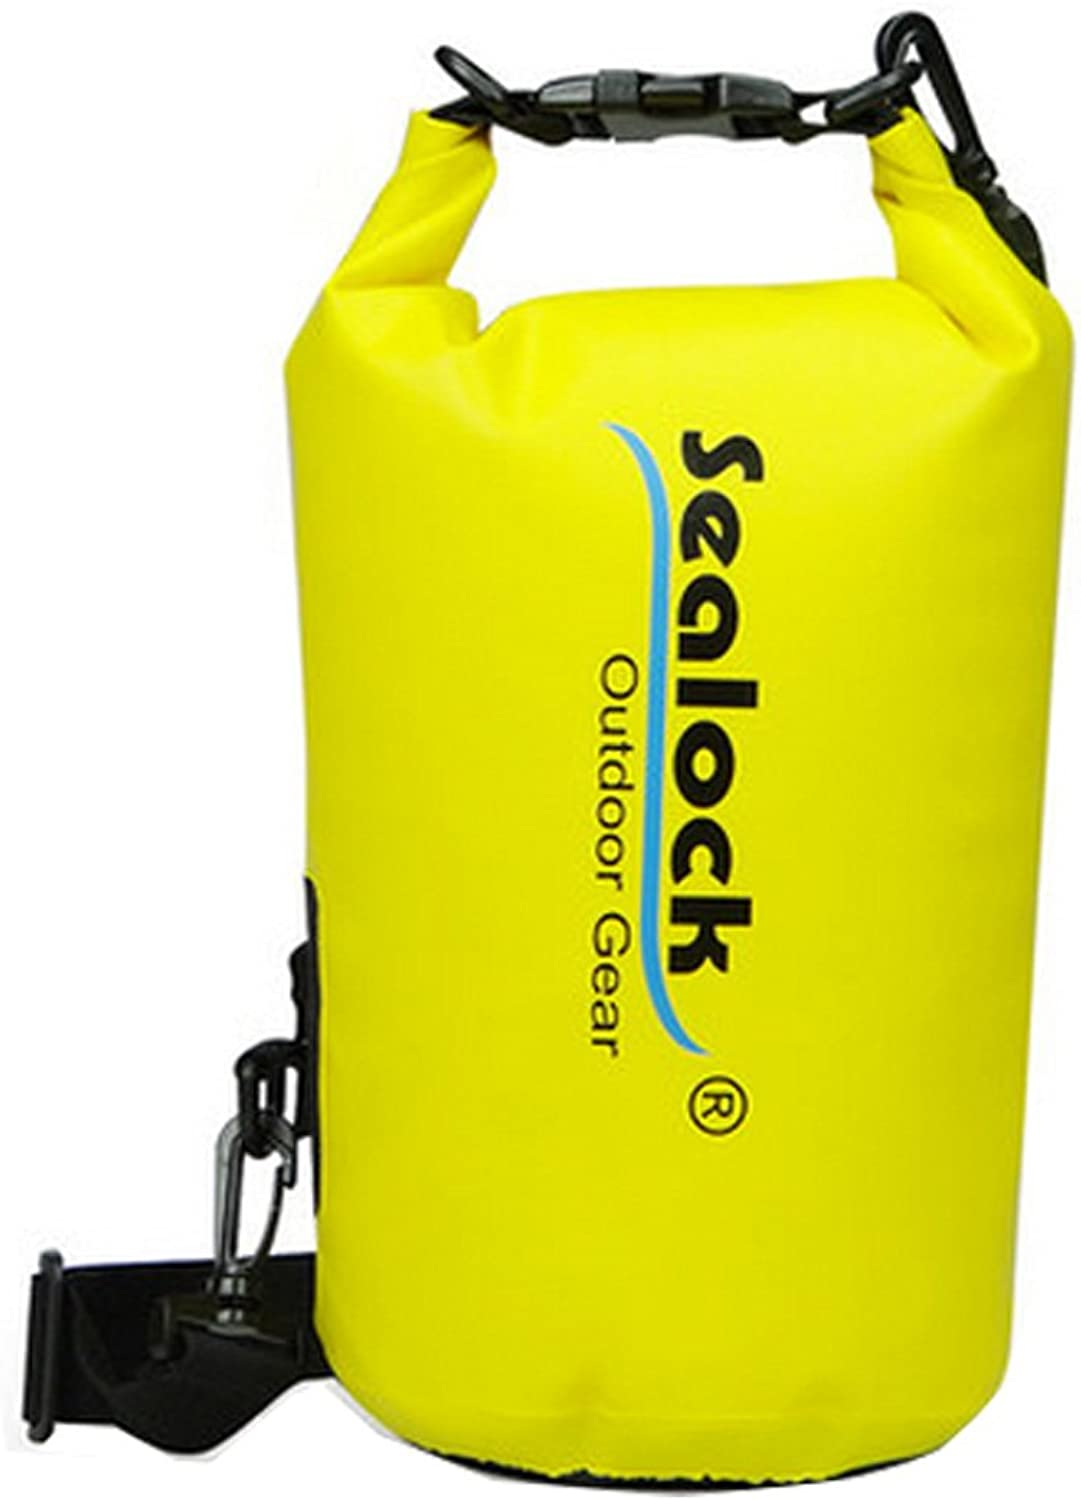 5LWaterproof Dry Sack for Boating Floating Swimming with Strap,Yellow